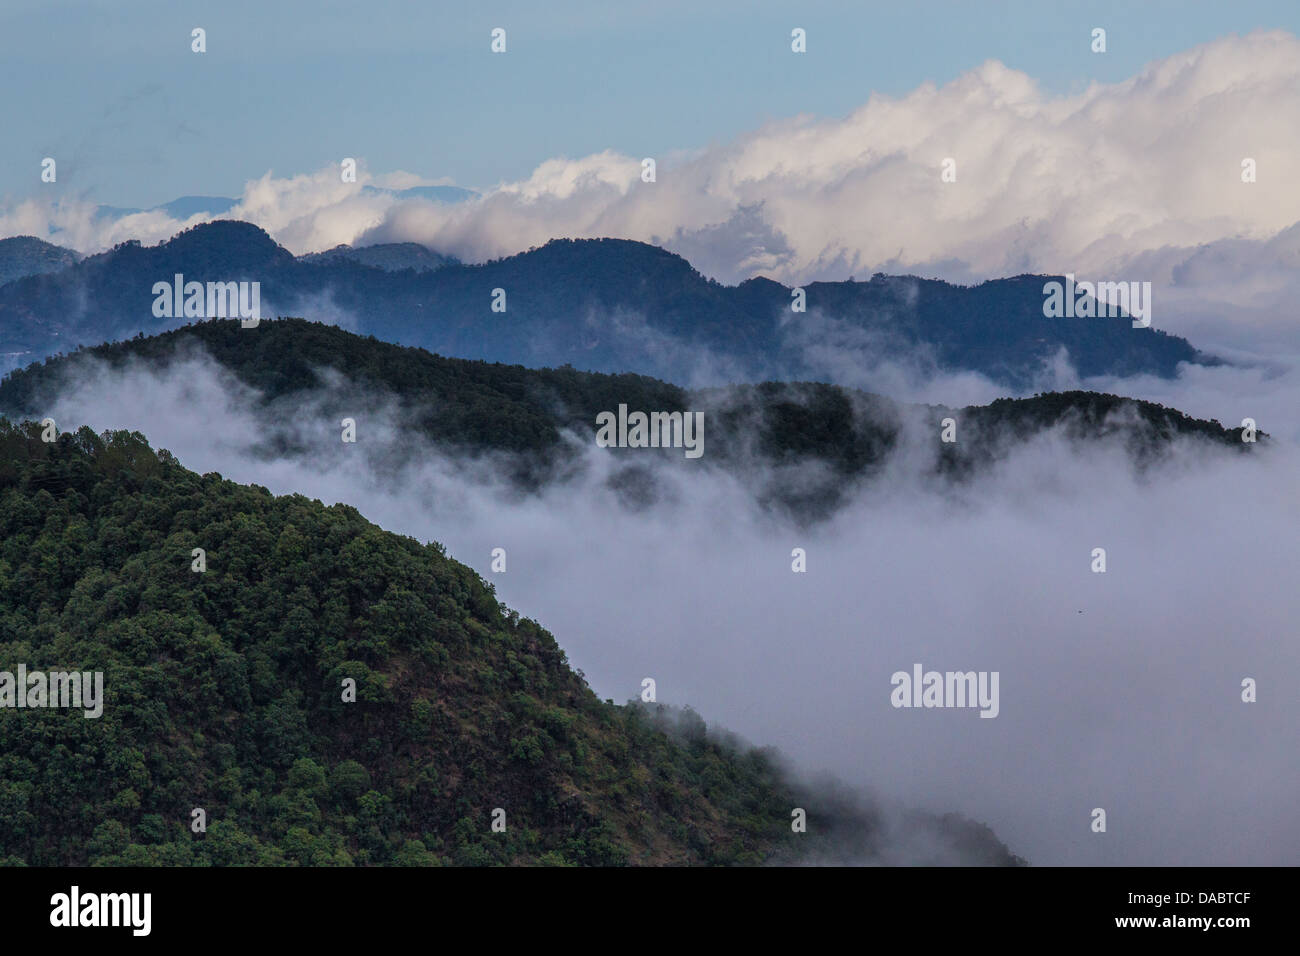 View from Mussoorie, India - Stock Image